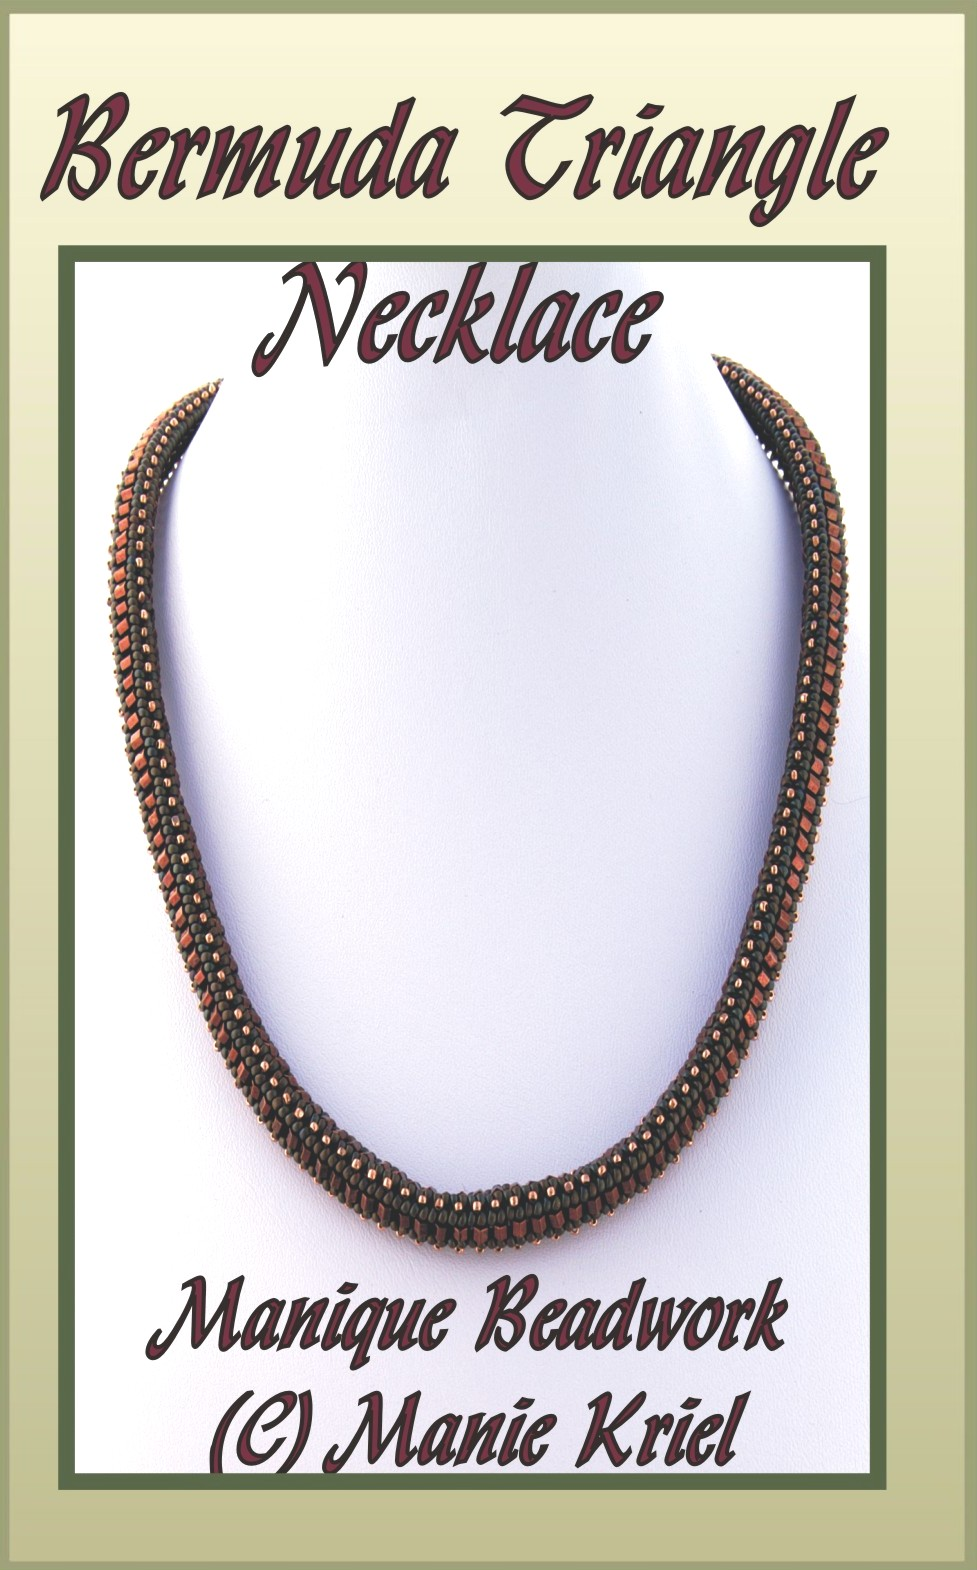 Bermuda Triangle Necklace Kit